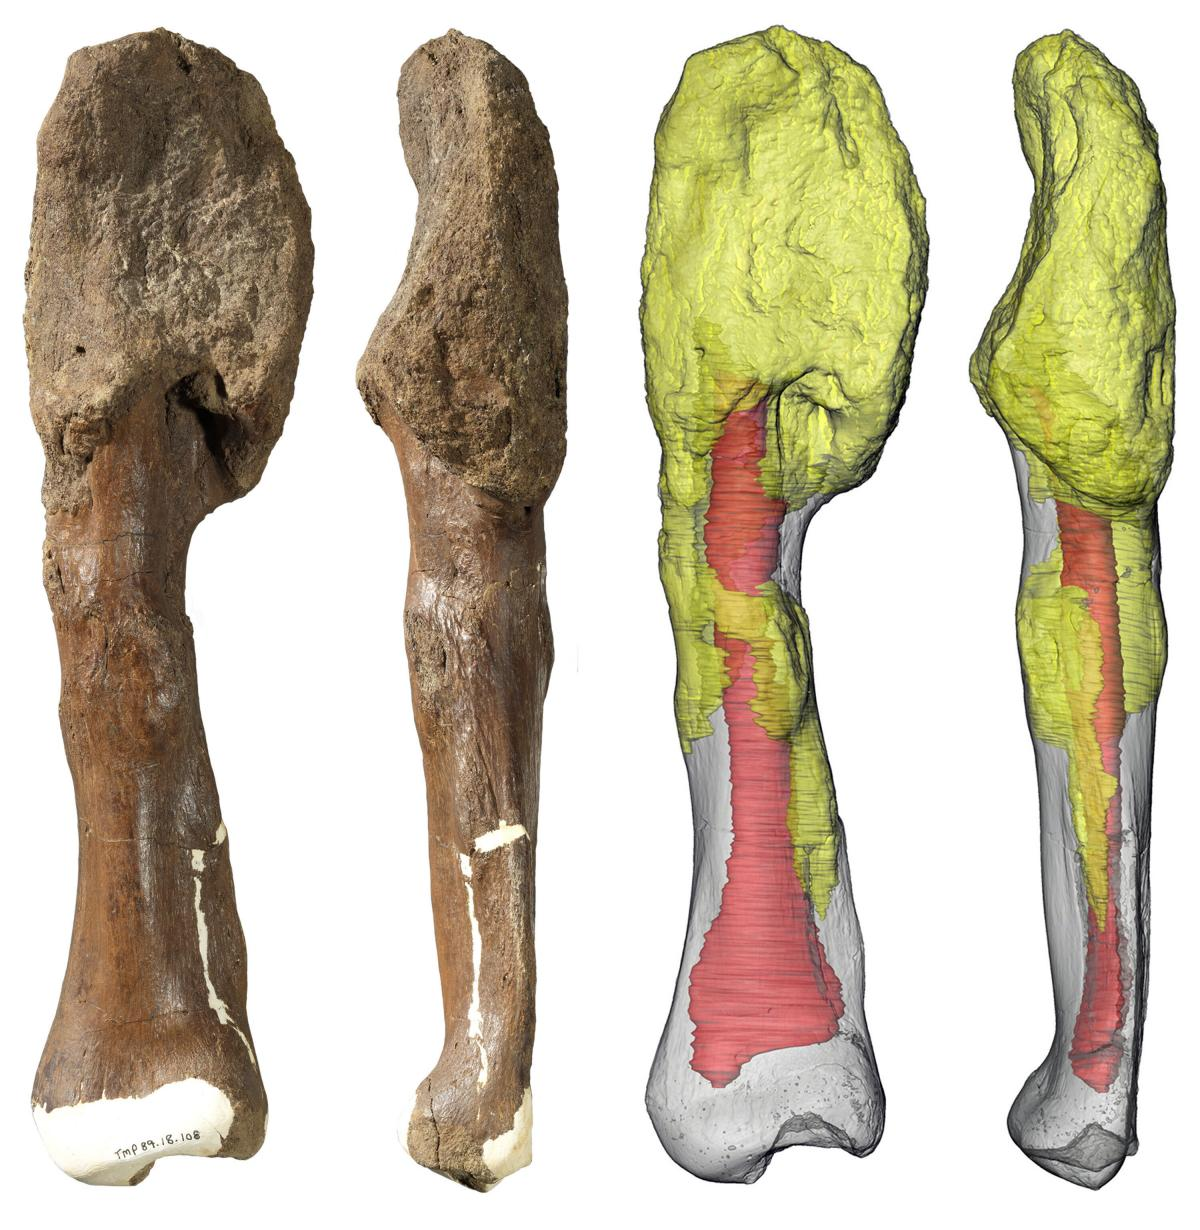 Two views of the Centrosaurus apertus shin bone (fibula) with malignant bone cancer (osteosarcoma). The extensive invasion of the cancer throughout the bone (yellow) suggests that it persisted for a considerable period of the dinosaur's life and may have